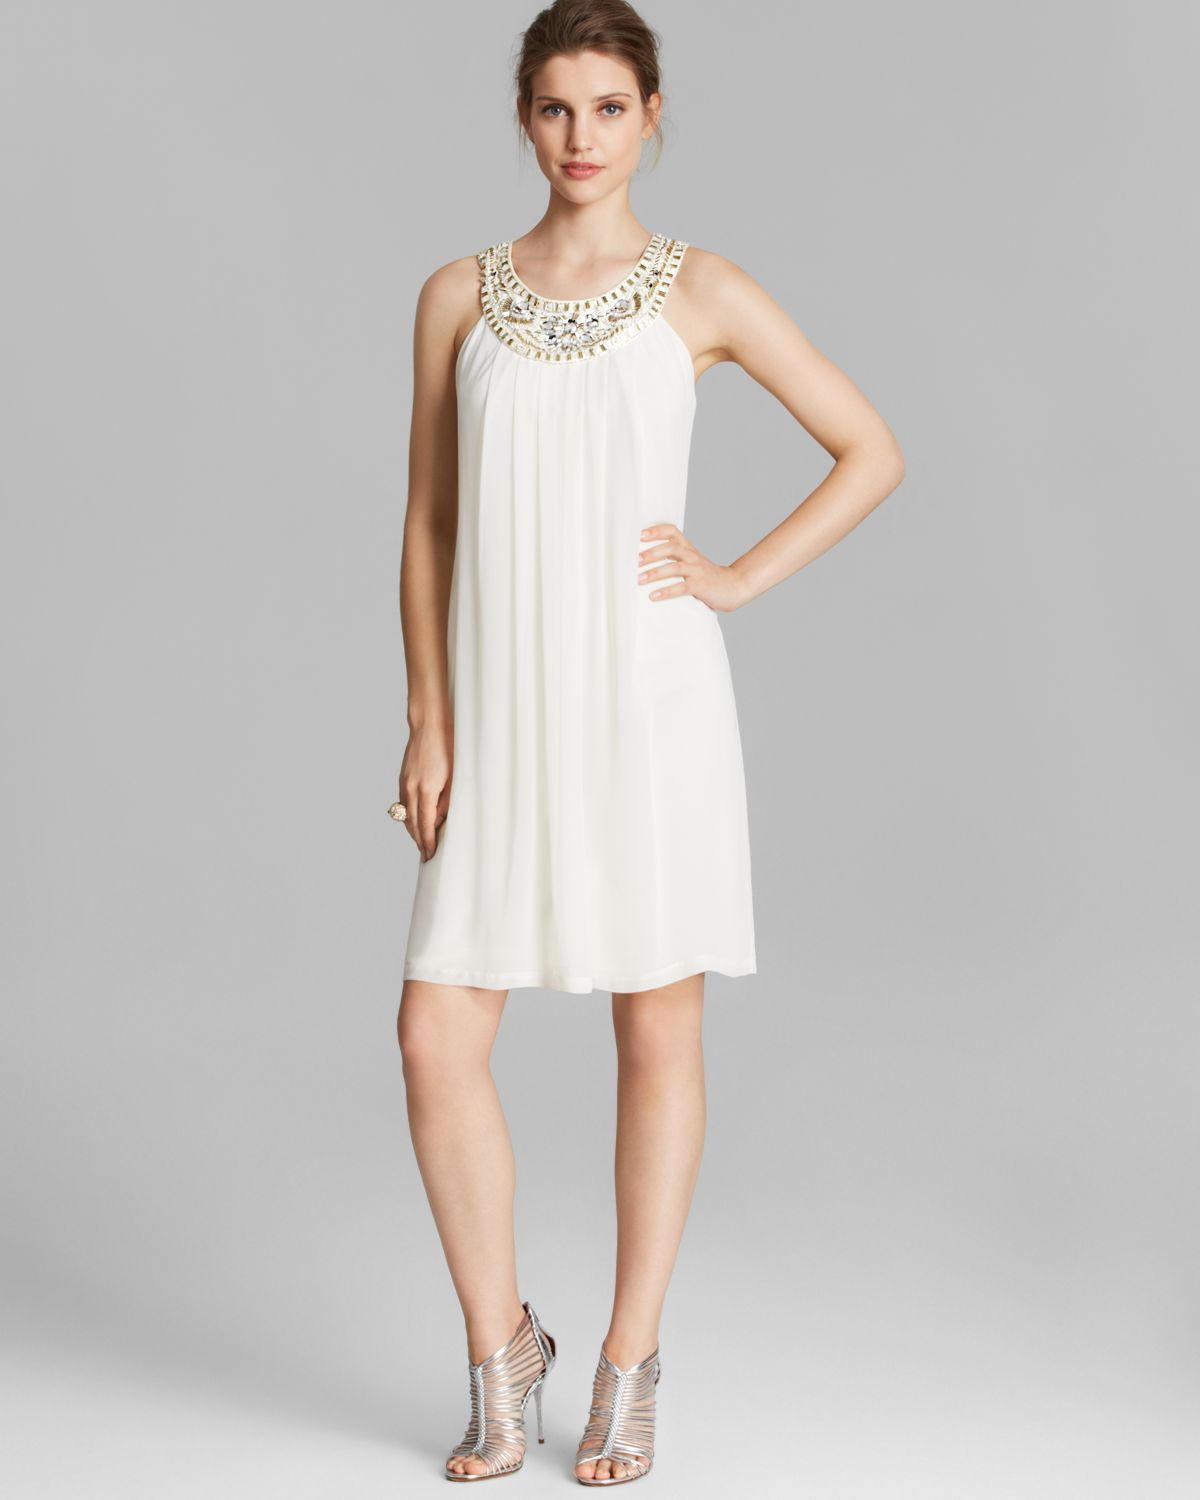 Sue wong Dress - Sleeveless A-Line Shift in White | Lyst